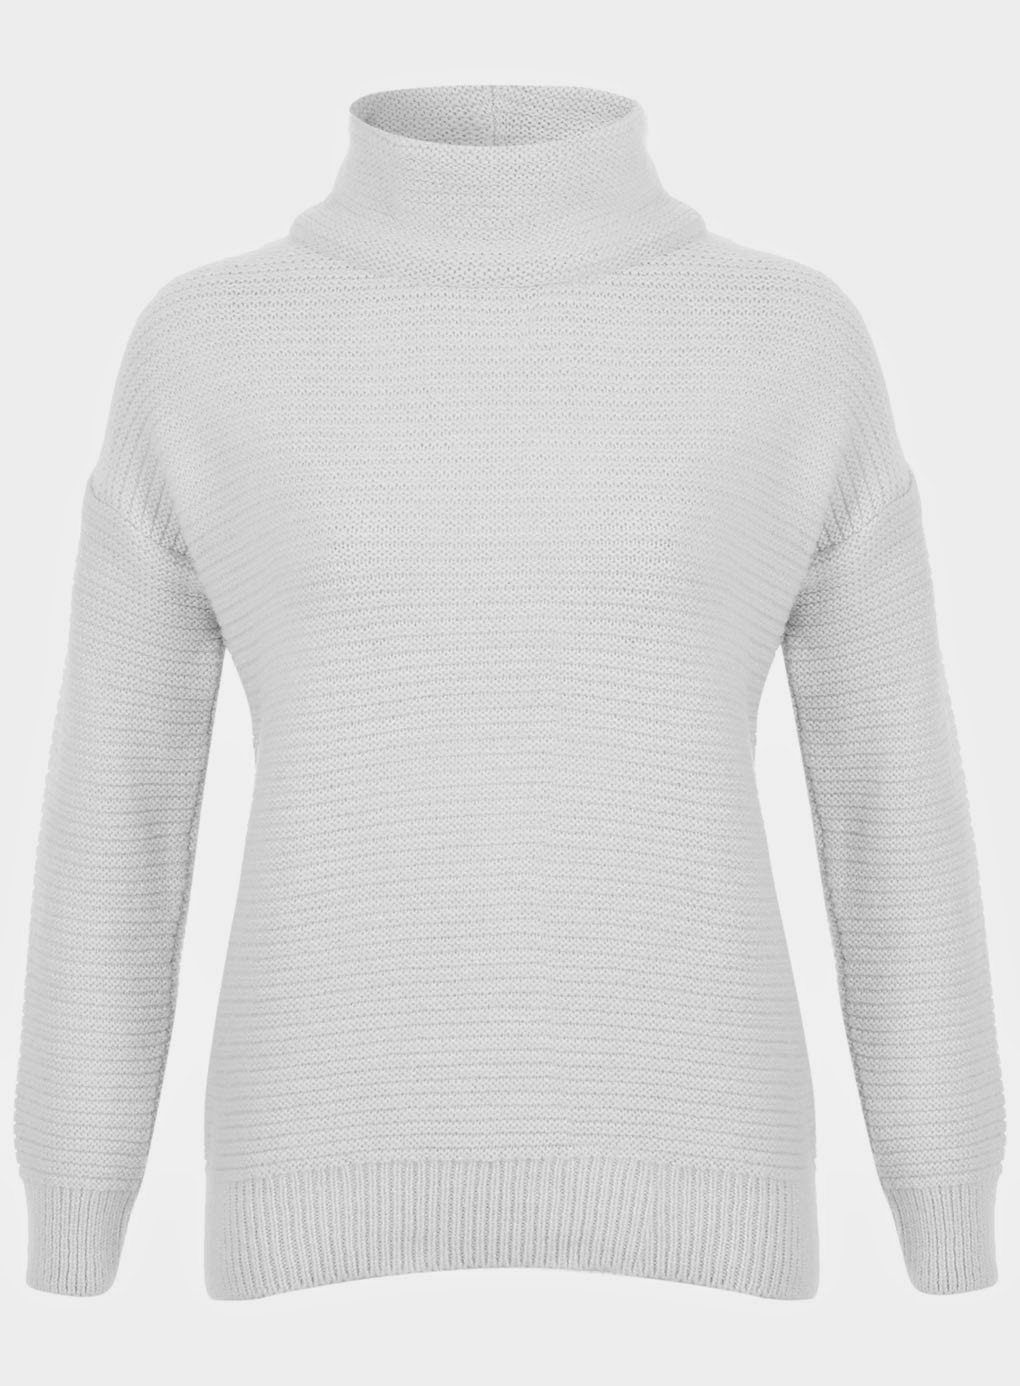 white high neck jumper, miss selfridge white jumper,